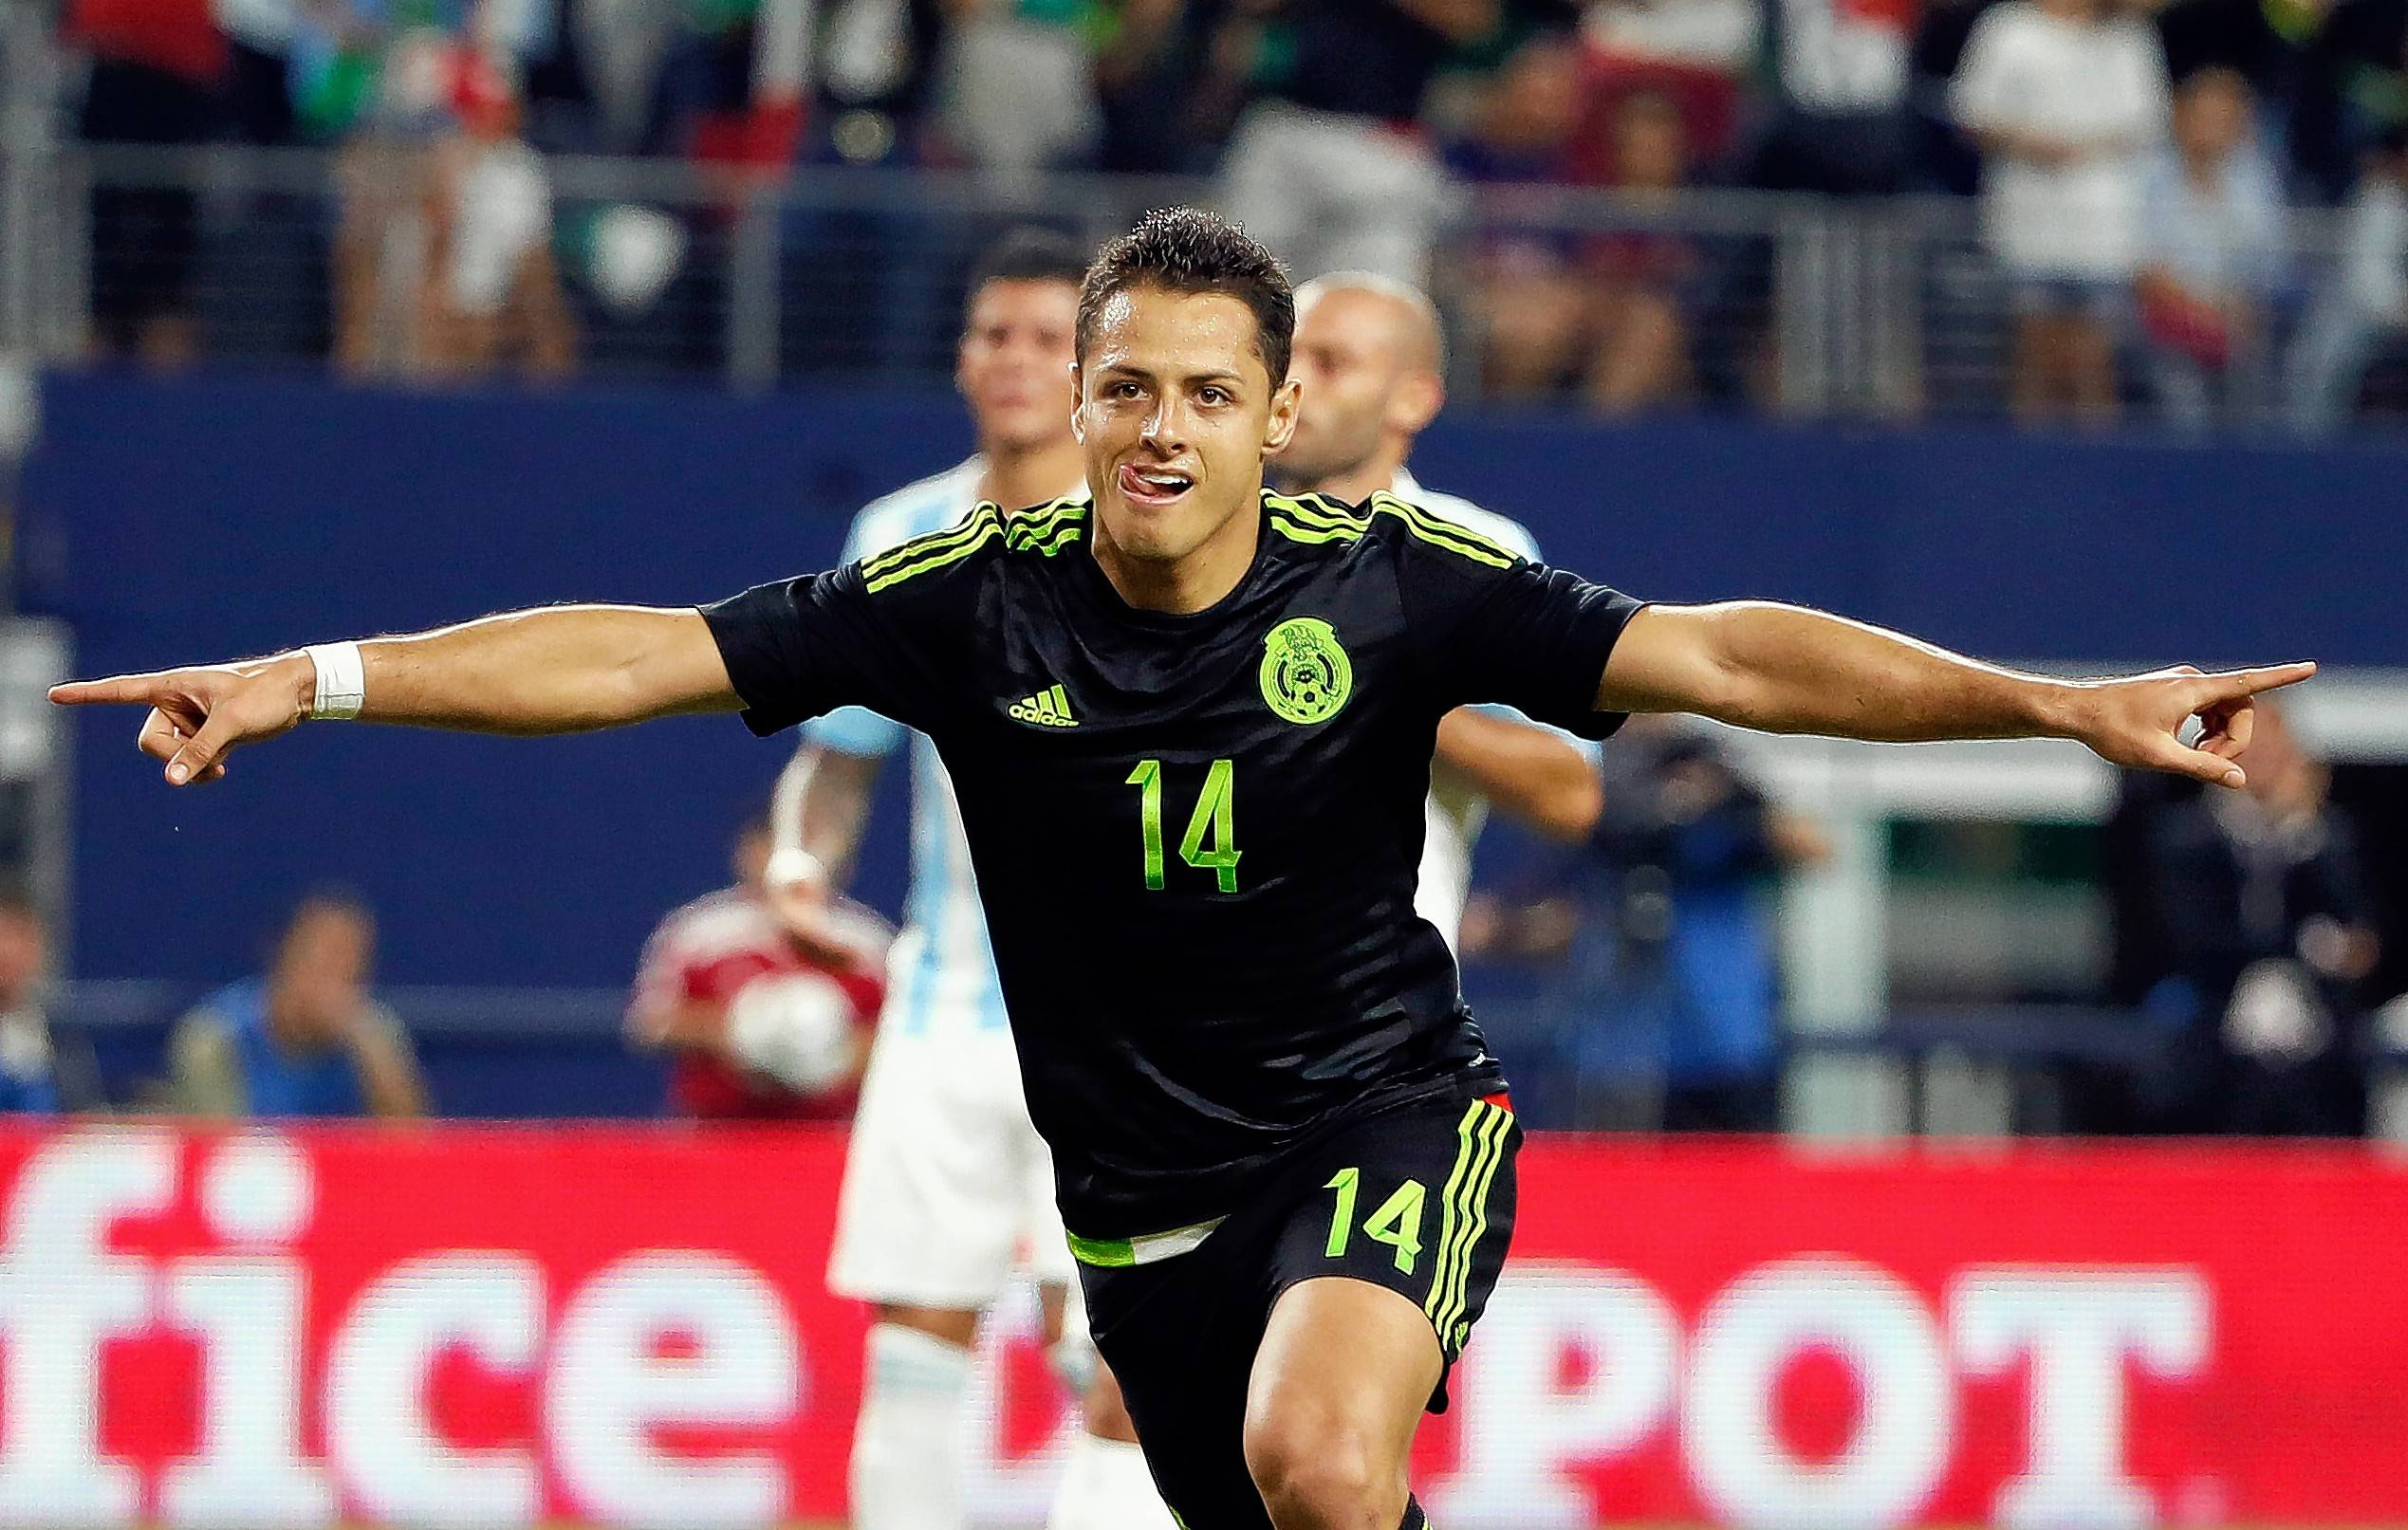 Mexico's Javier Hernandez is one of the many soccer superstars scheduled to play in the Copa America Centenario tournament, which includes four matches at Soldier Field in Chicago.